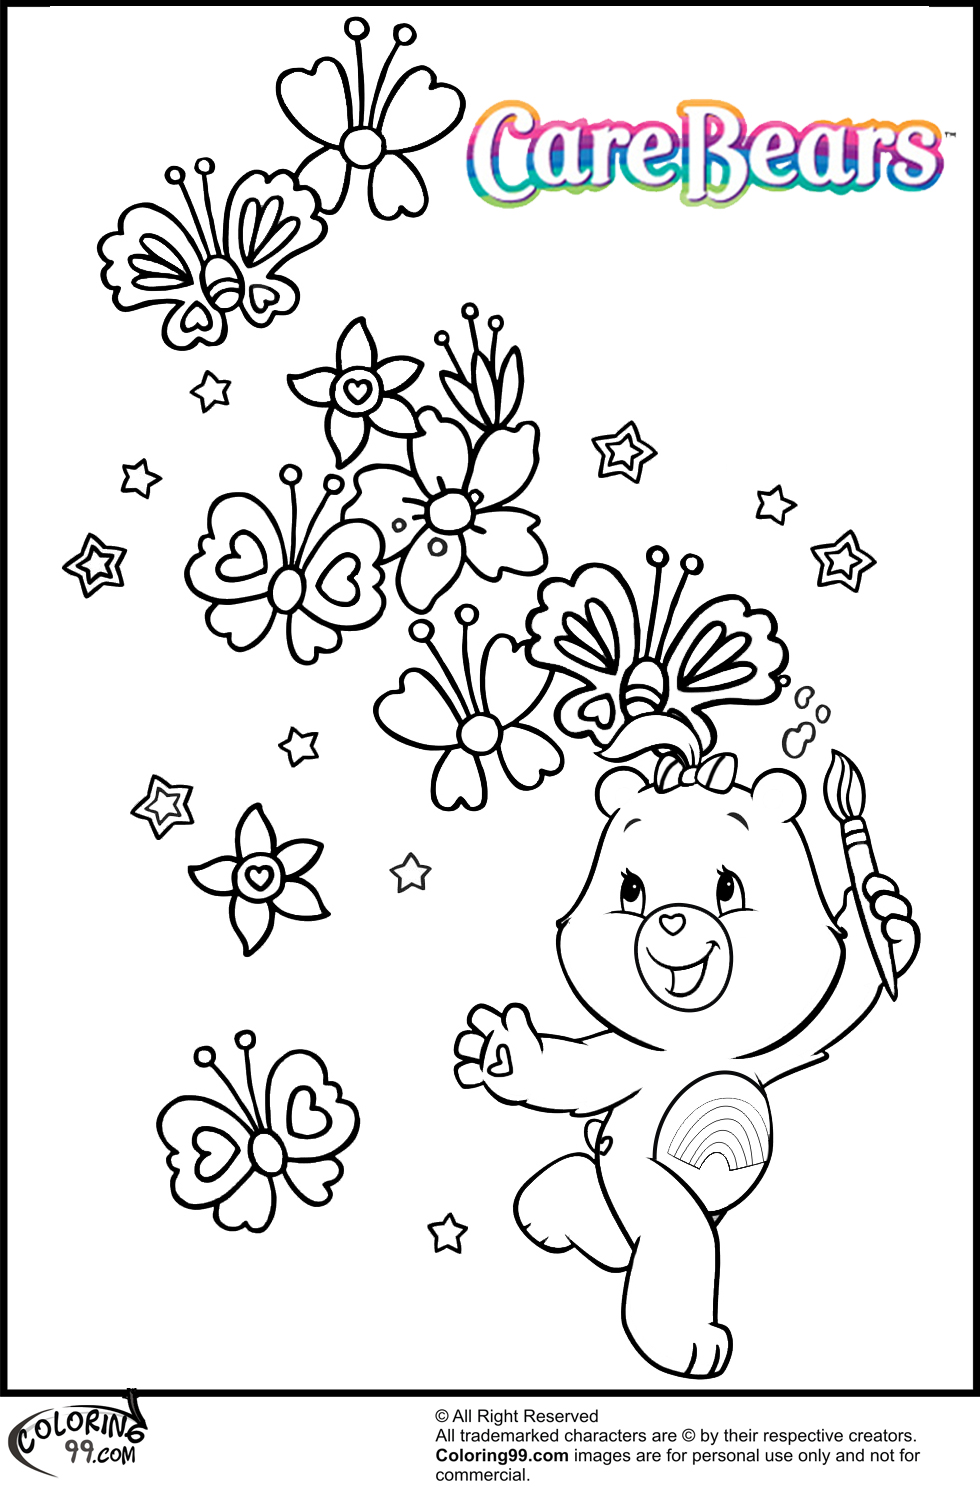 care bear coloring pages - Thinking Of You Coloring Pages